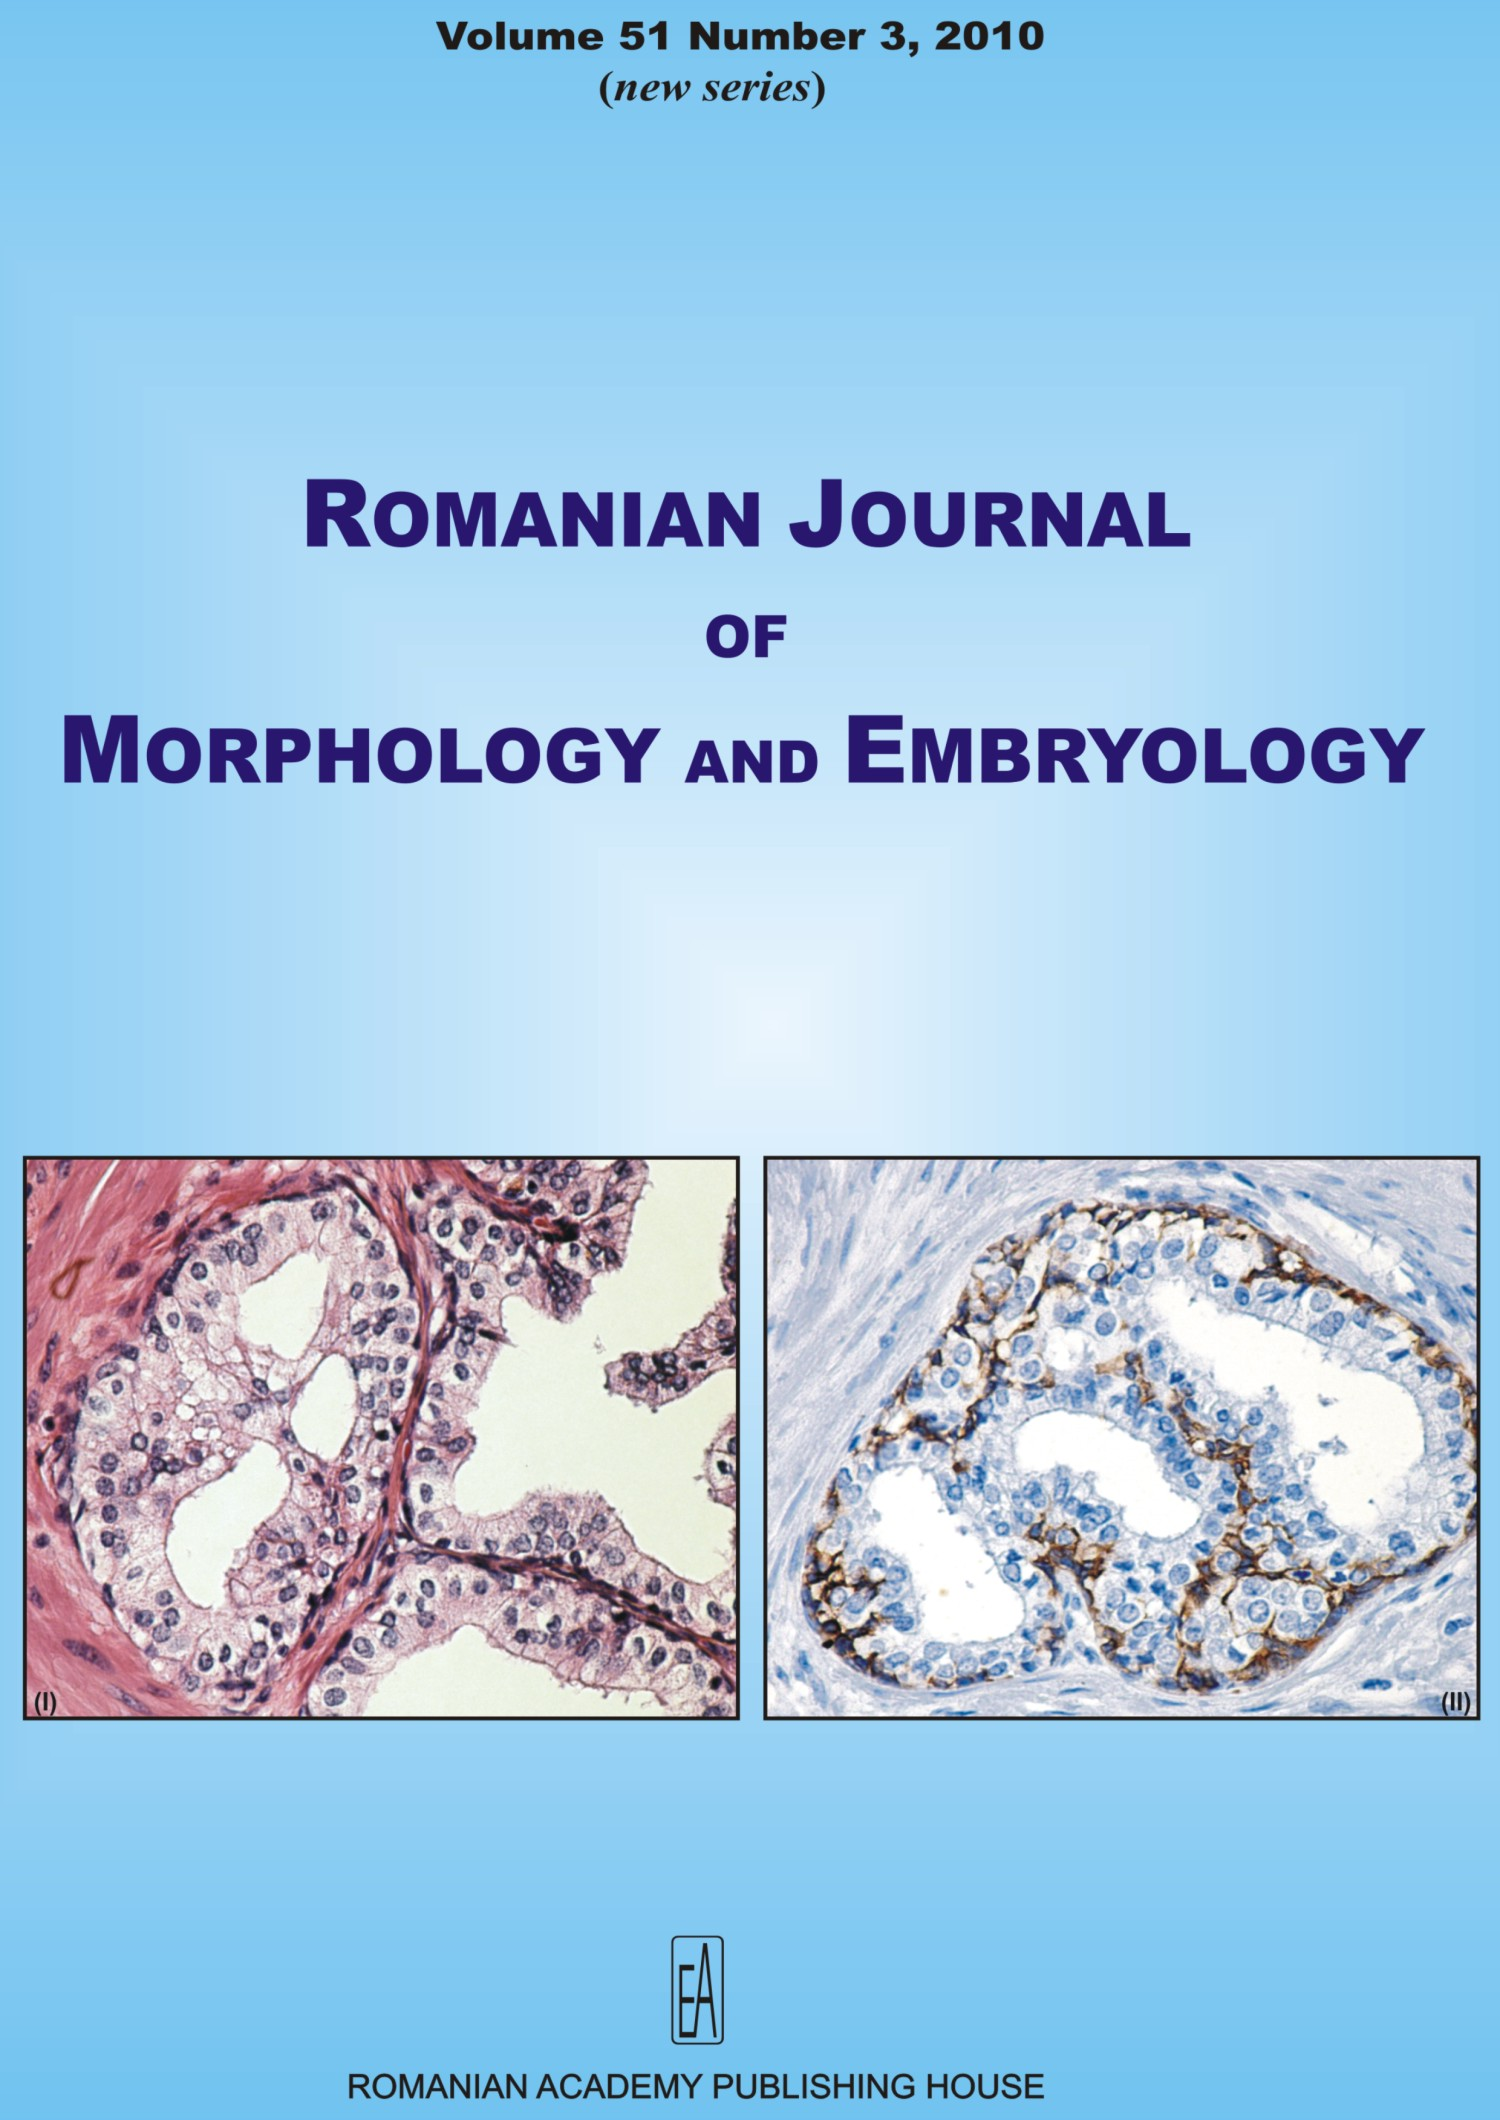 Romanian Journal of Morphology and Embryology, vol. 51 no. 3, 2010